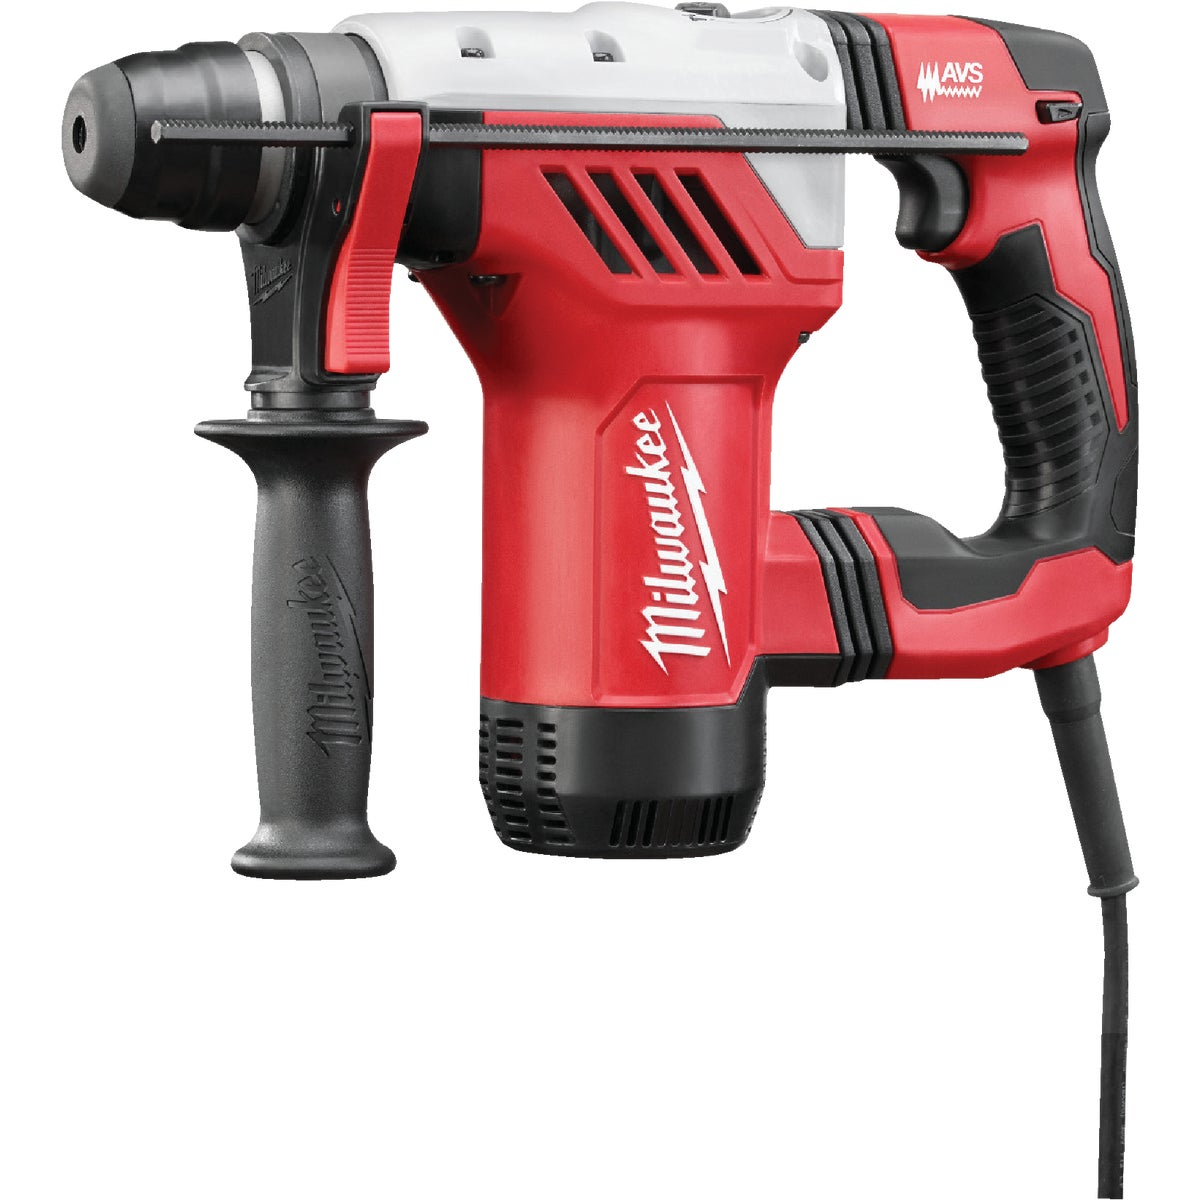 """1-1/8"""" SDS ROTARY HAMMER - 5359-21 by Milwaukee Elec Tool"""